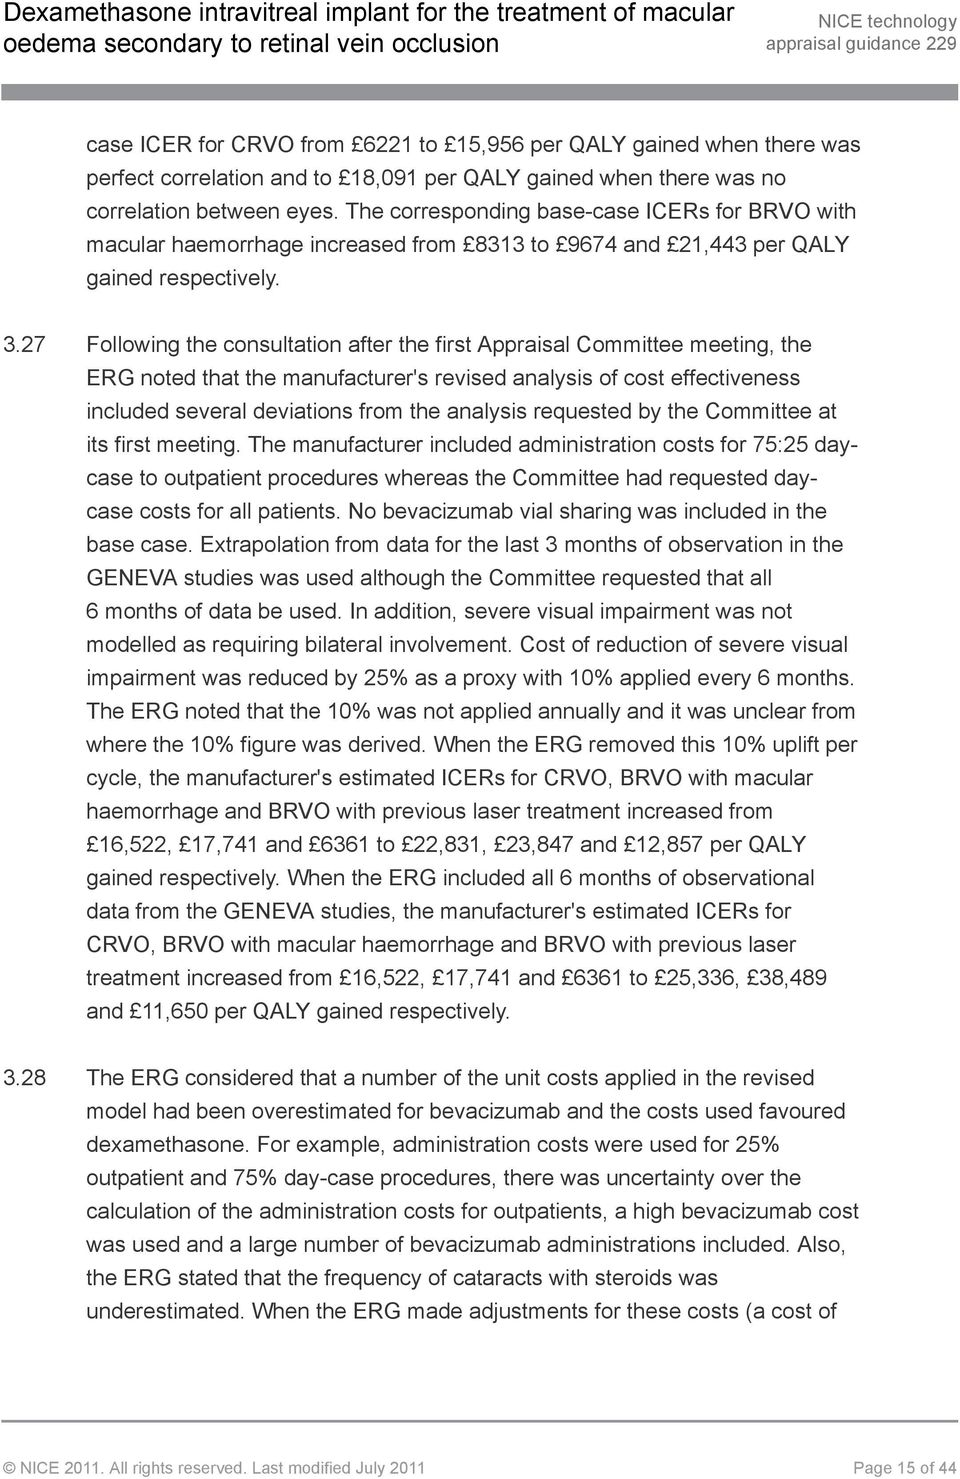 27 Following the consultation after the first Appraisal Committee meeting, the ERG noted that the manufacturer's revised analysis of cost effectiveness included several deviations from the analysis